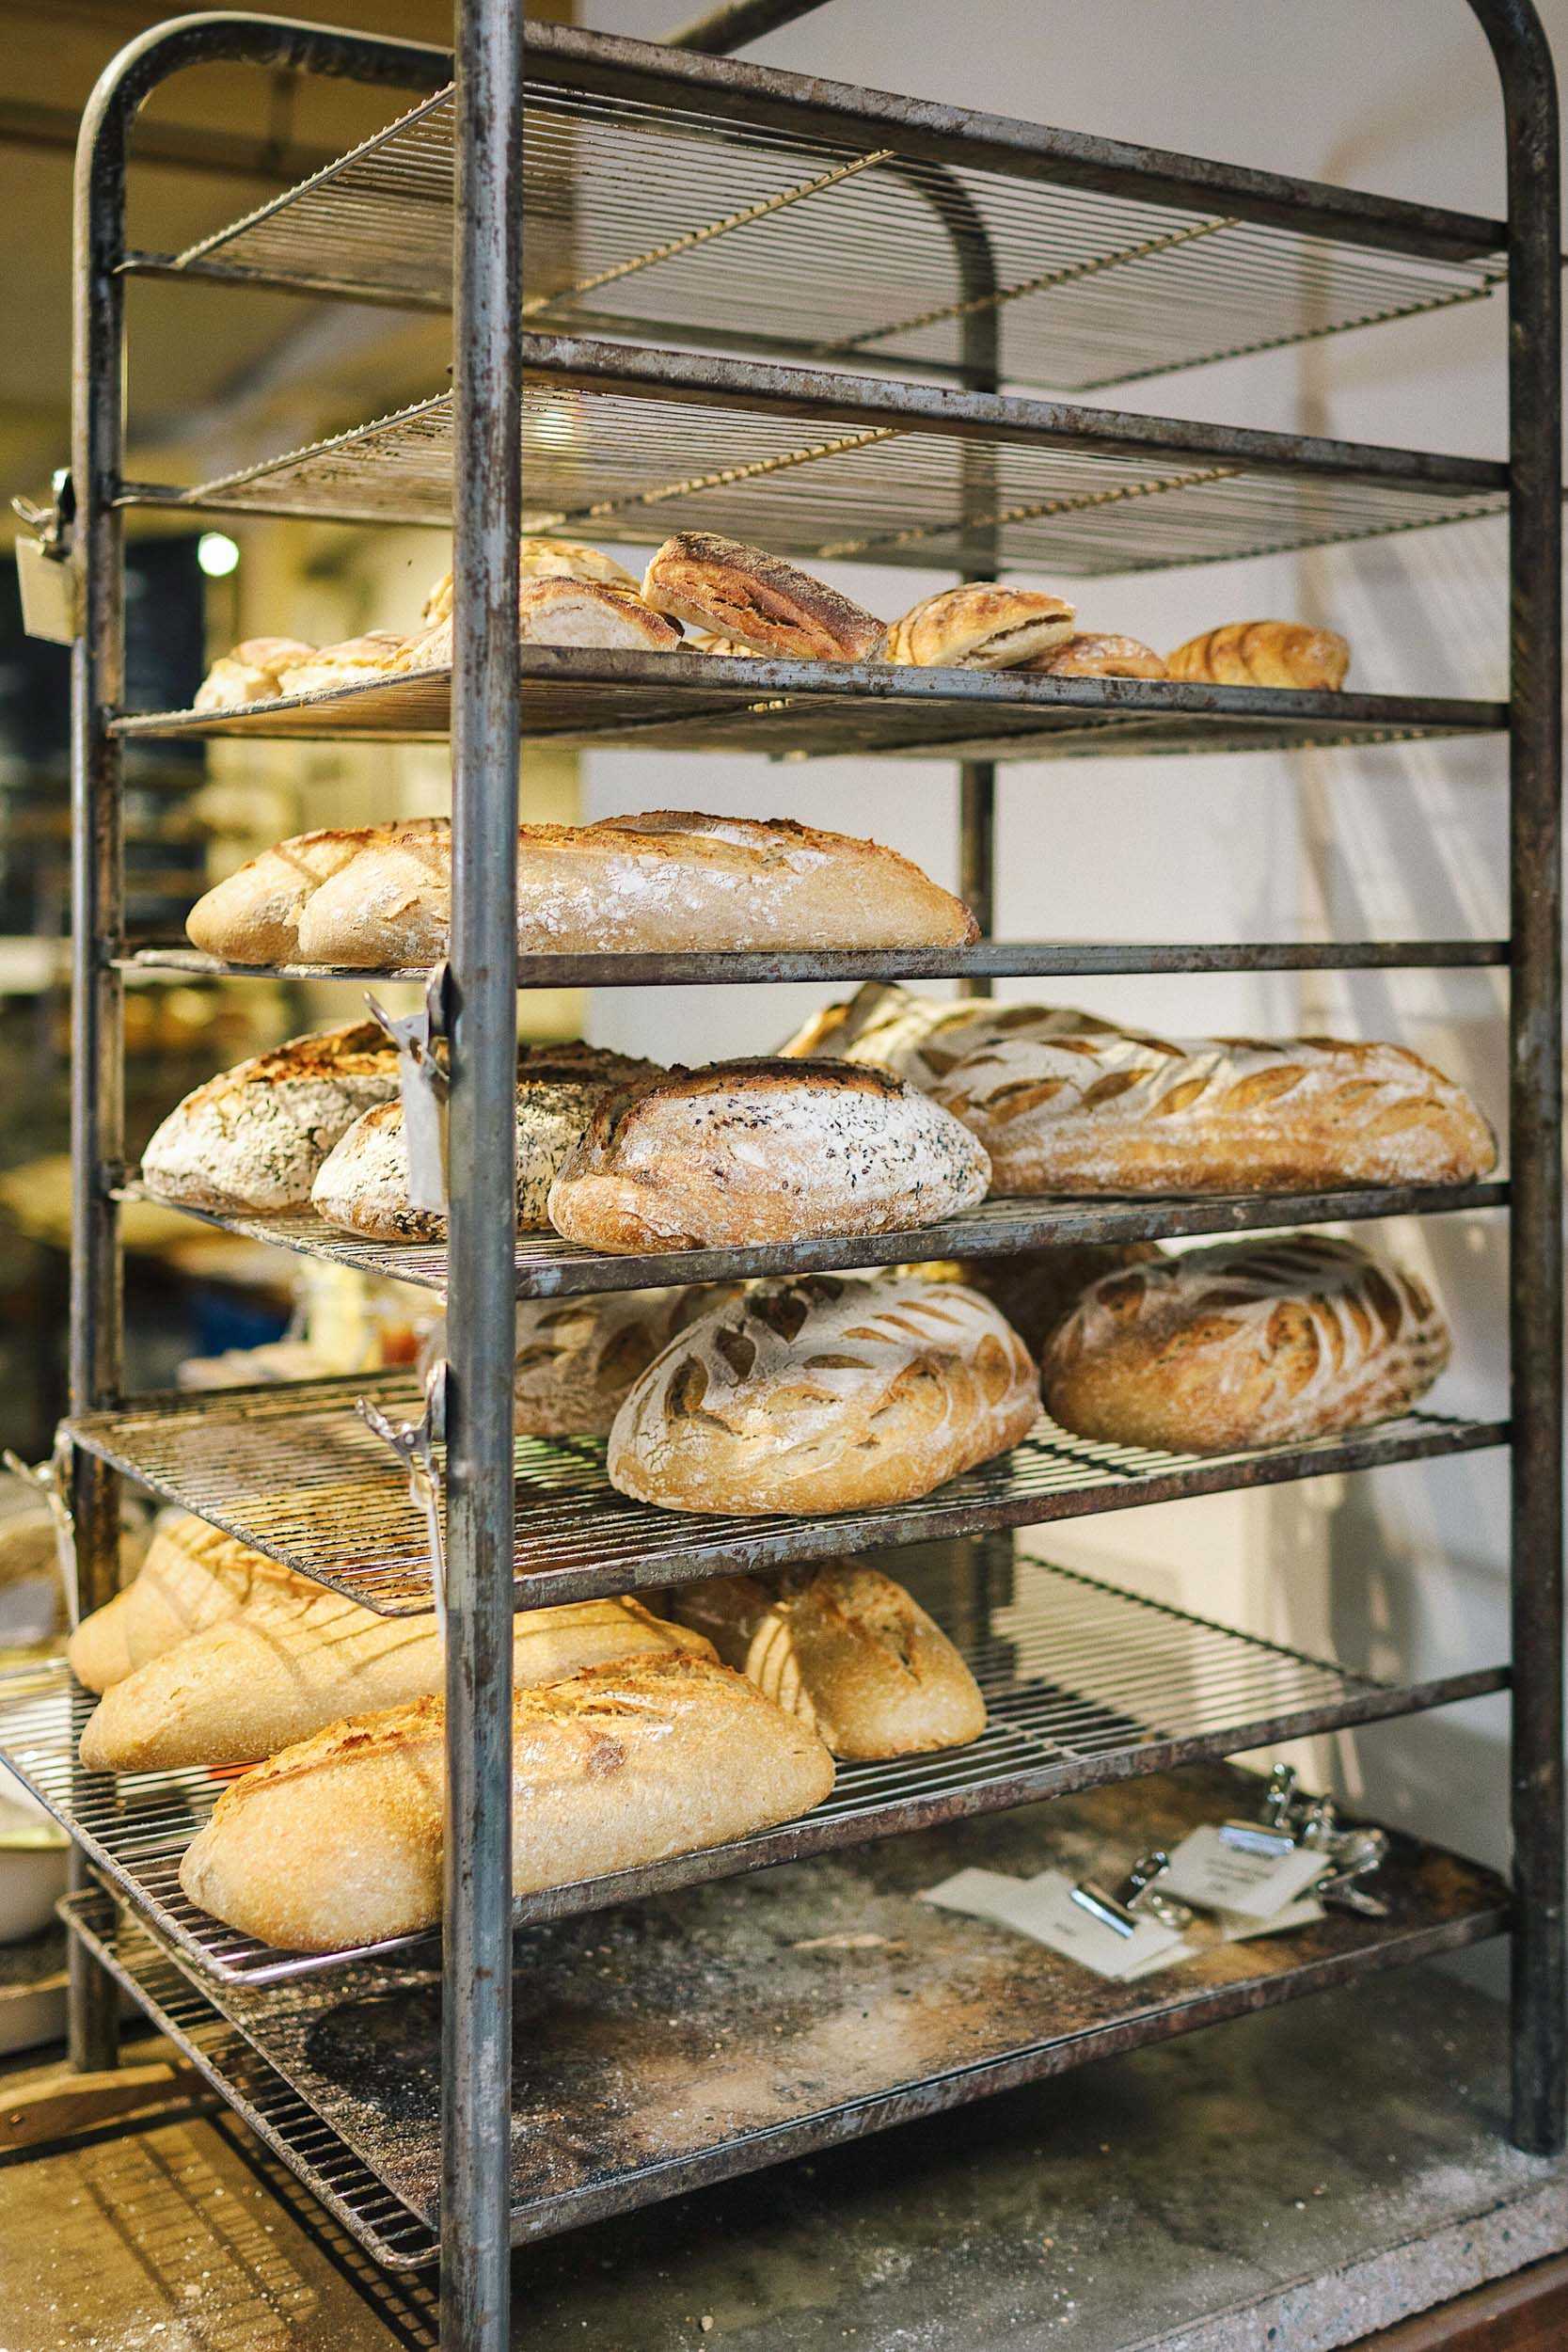 Da Matteo is a great place in Gothenburg to get coffee, a pastry, or some fresh bread